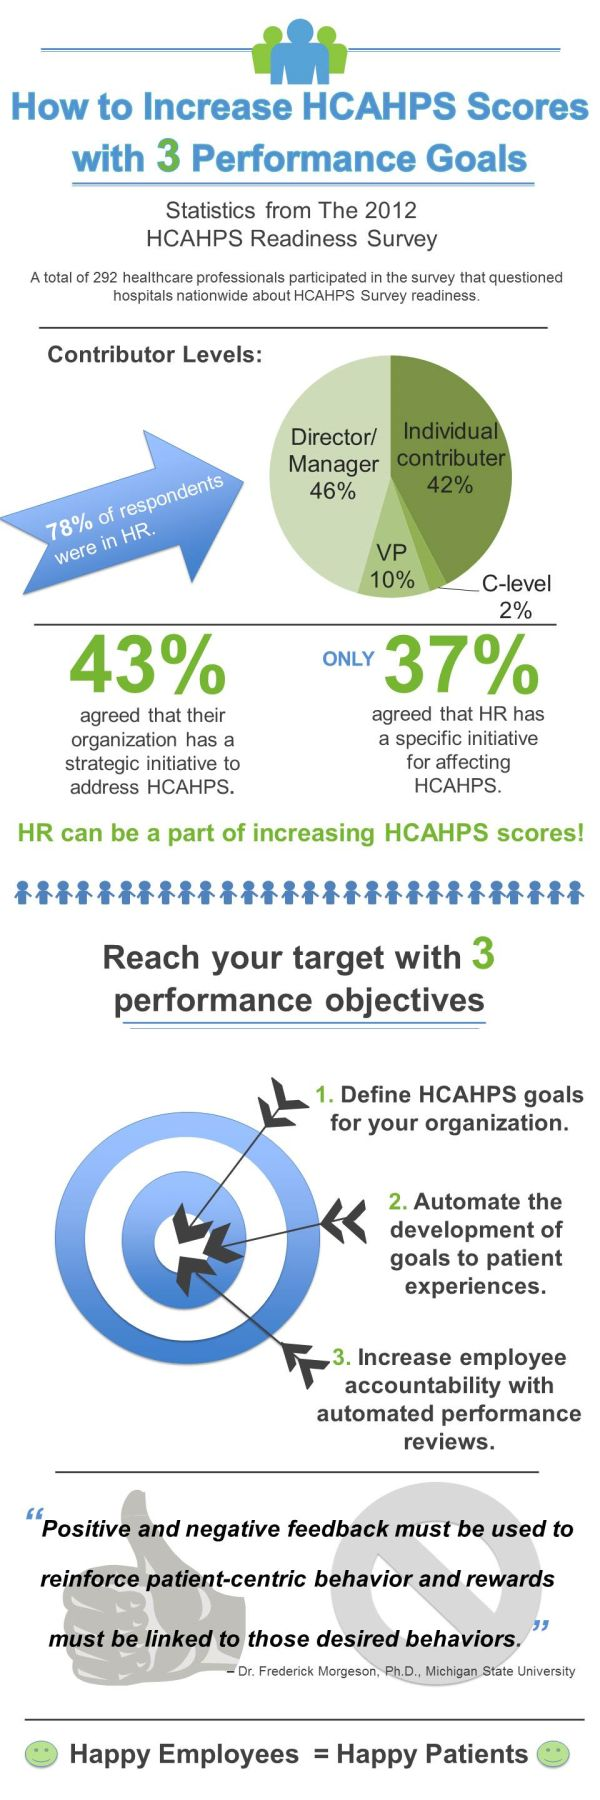 How to Increase HCAHPS Scores with 3 Performance Goals Infographic